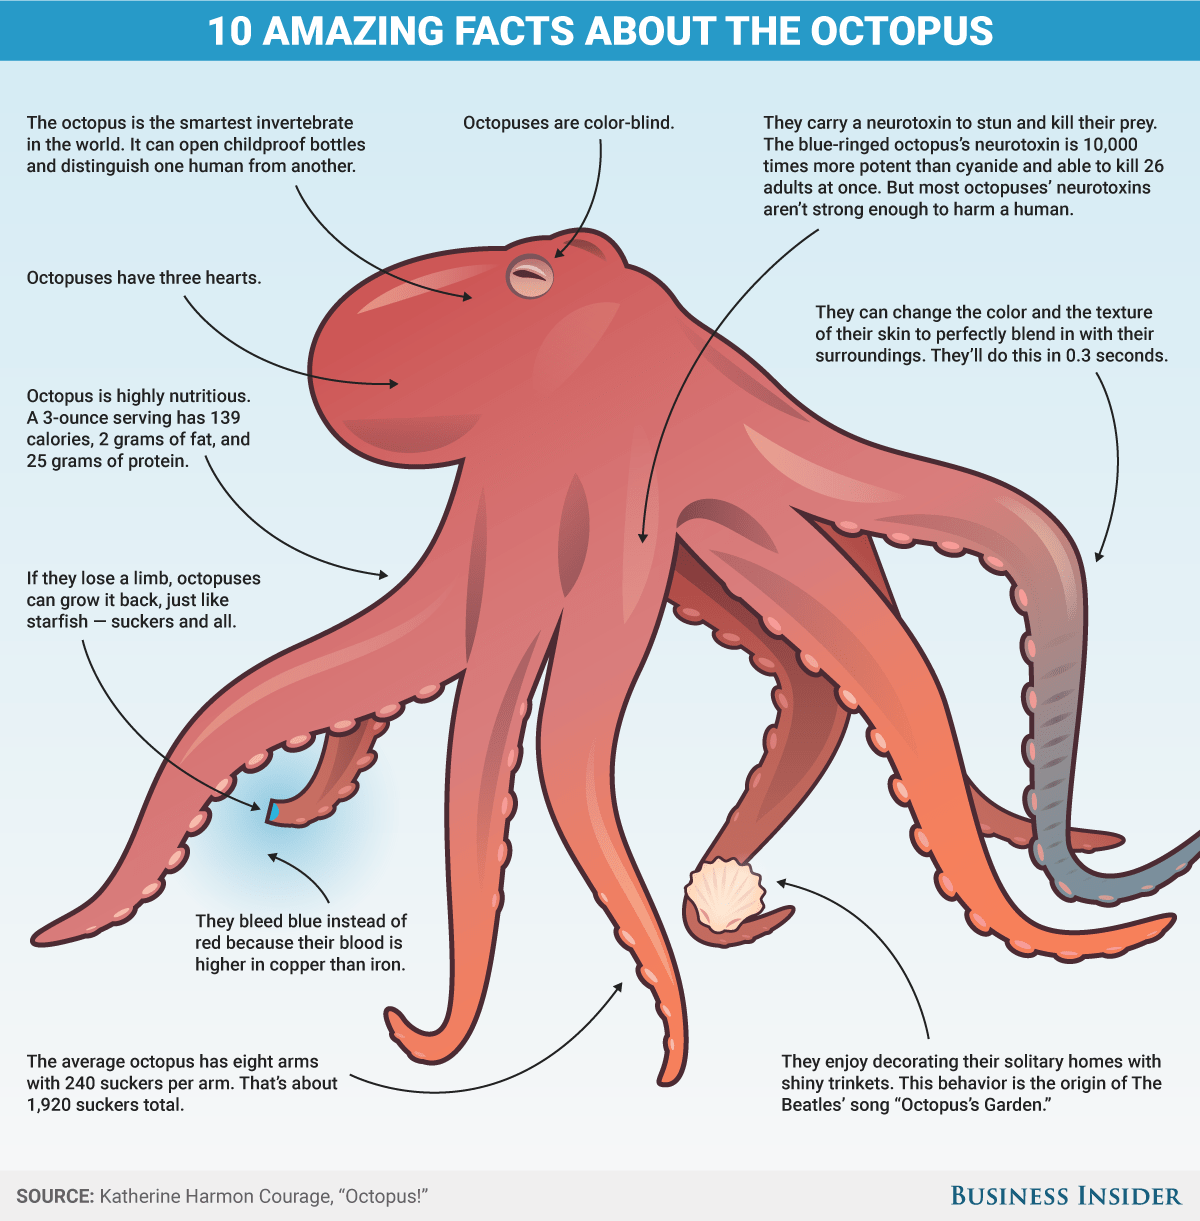 labeled diagram of octopus l5 30p to l14 30r wiring 10 reason the is incredible business insider